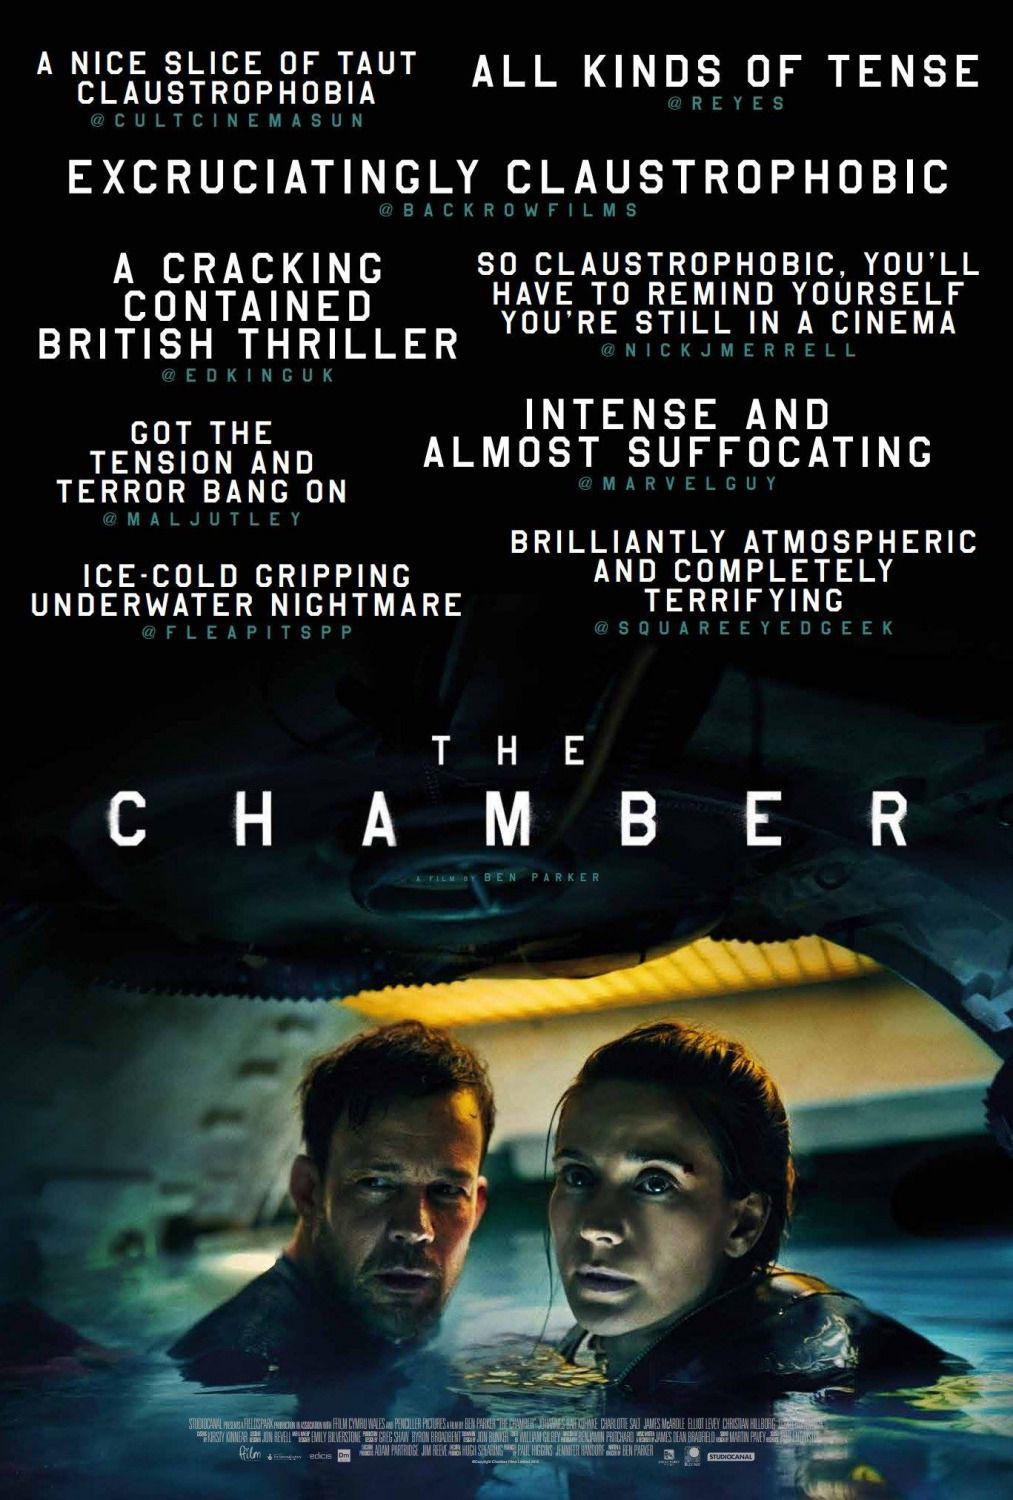 The Chamber by Ben Parker - scary film poster